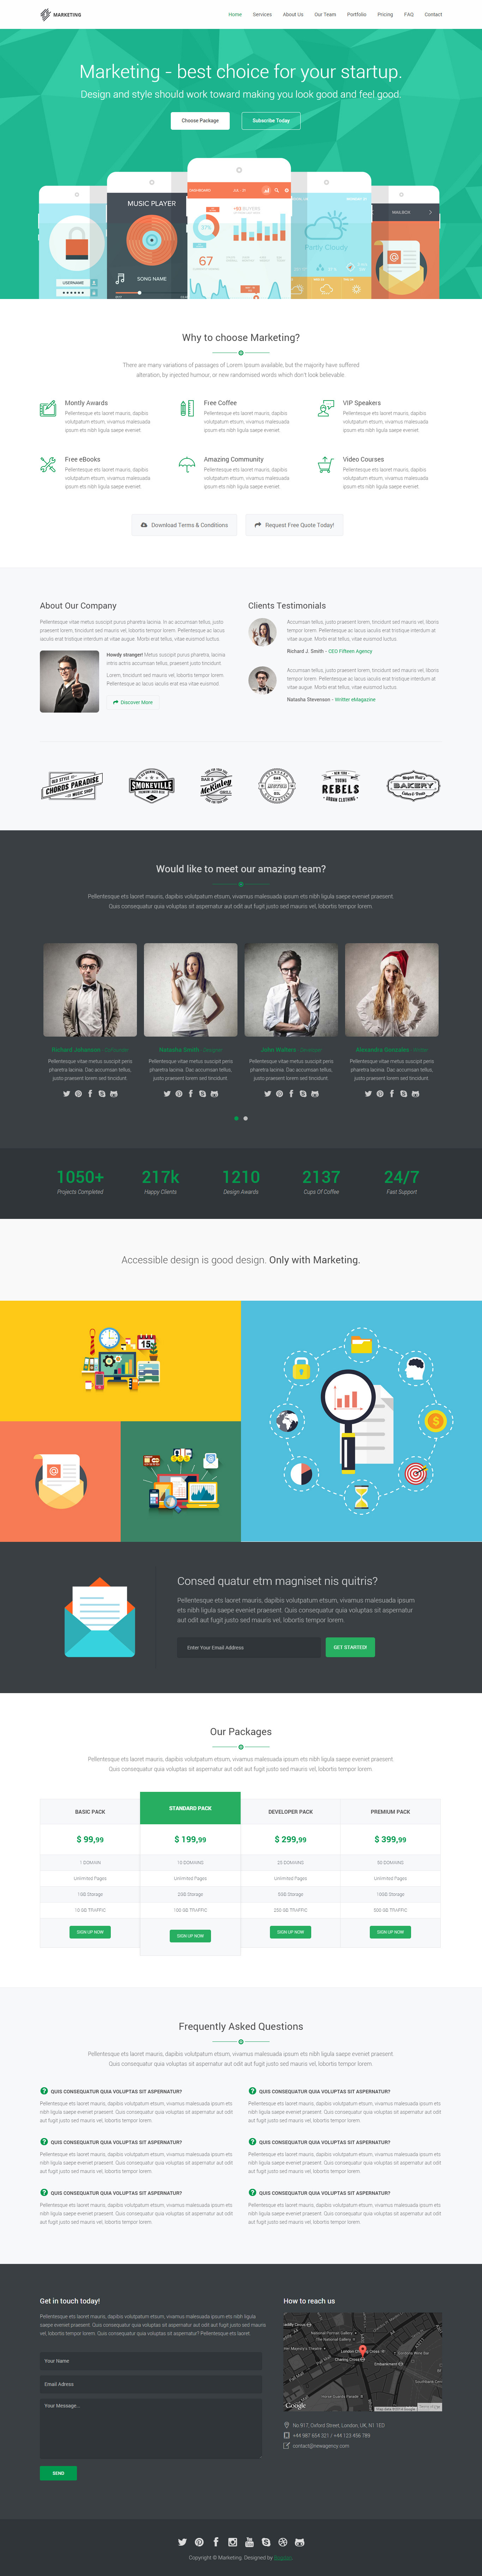 Marketing Startup Landing Page Template By Epic Themes Themeforest